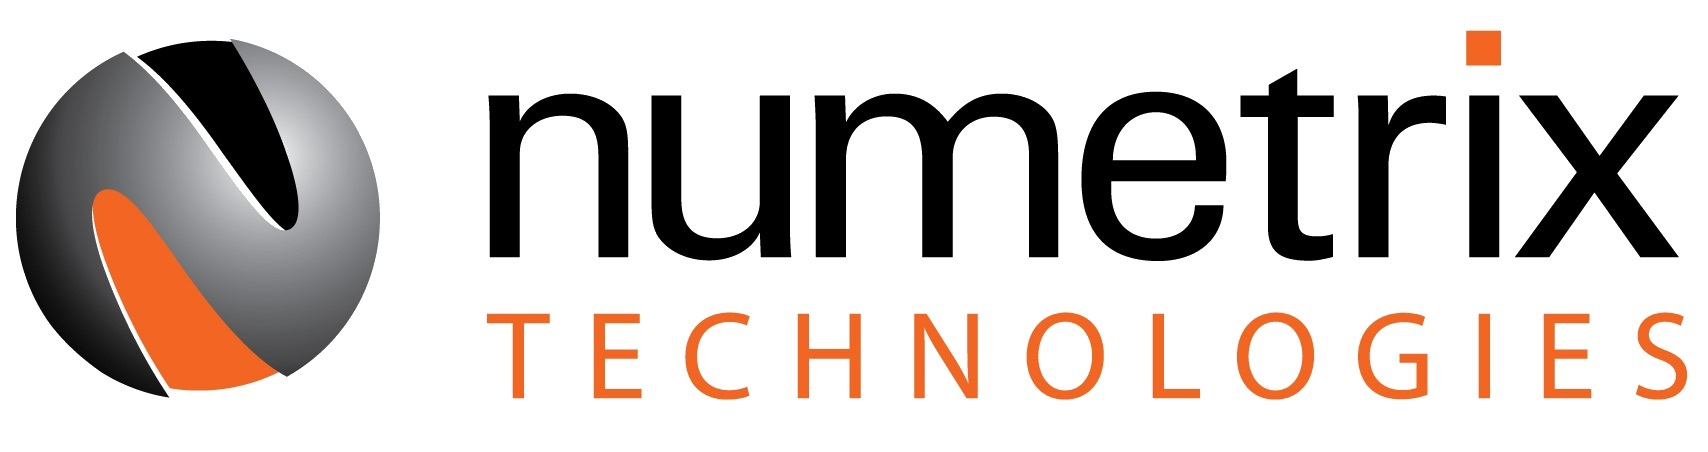 Technologies Numetrix inc.